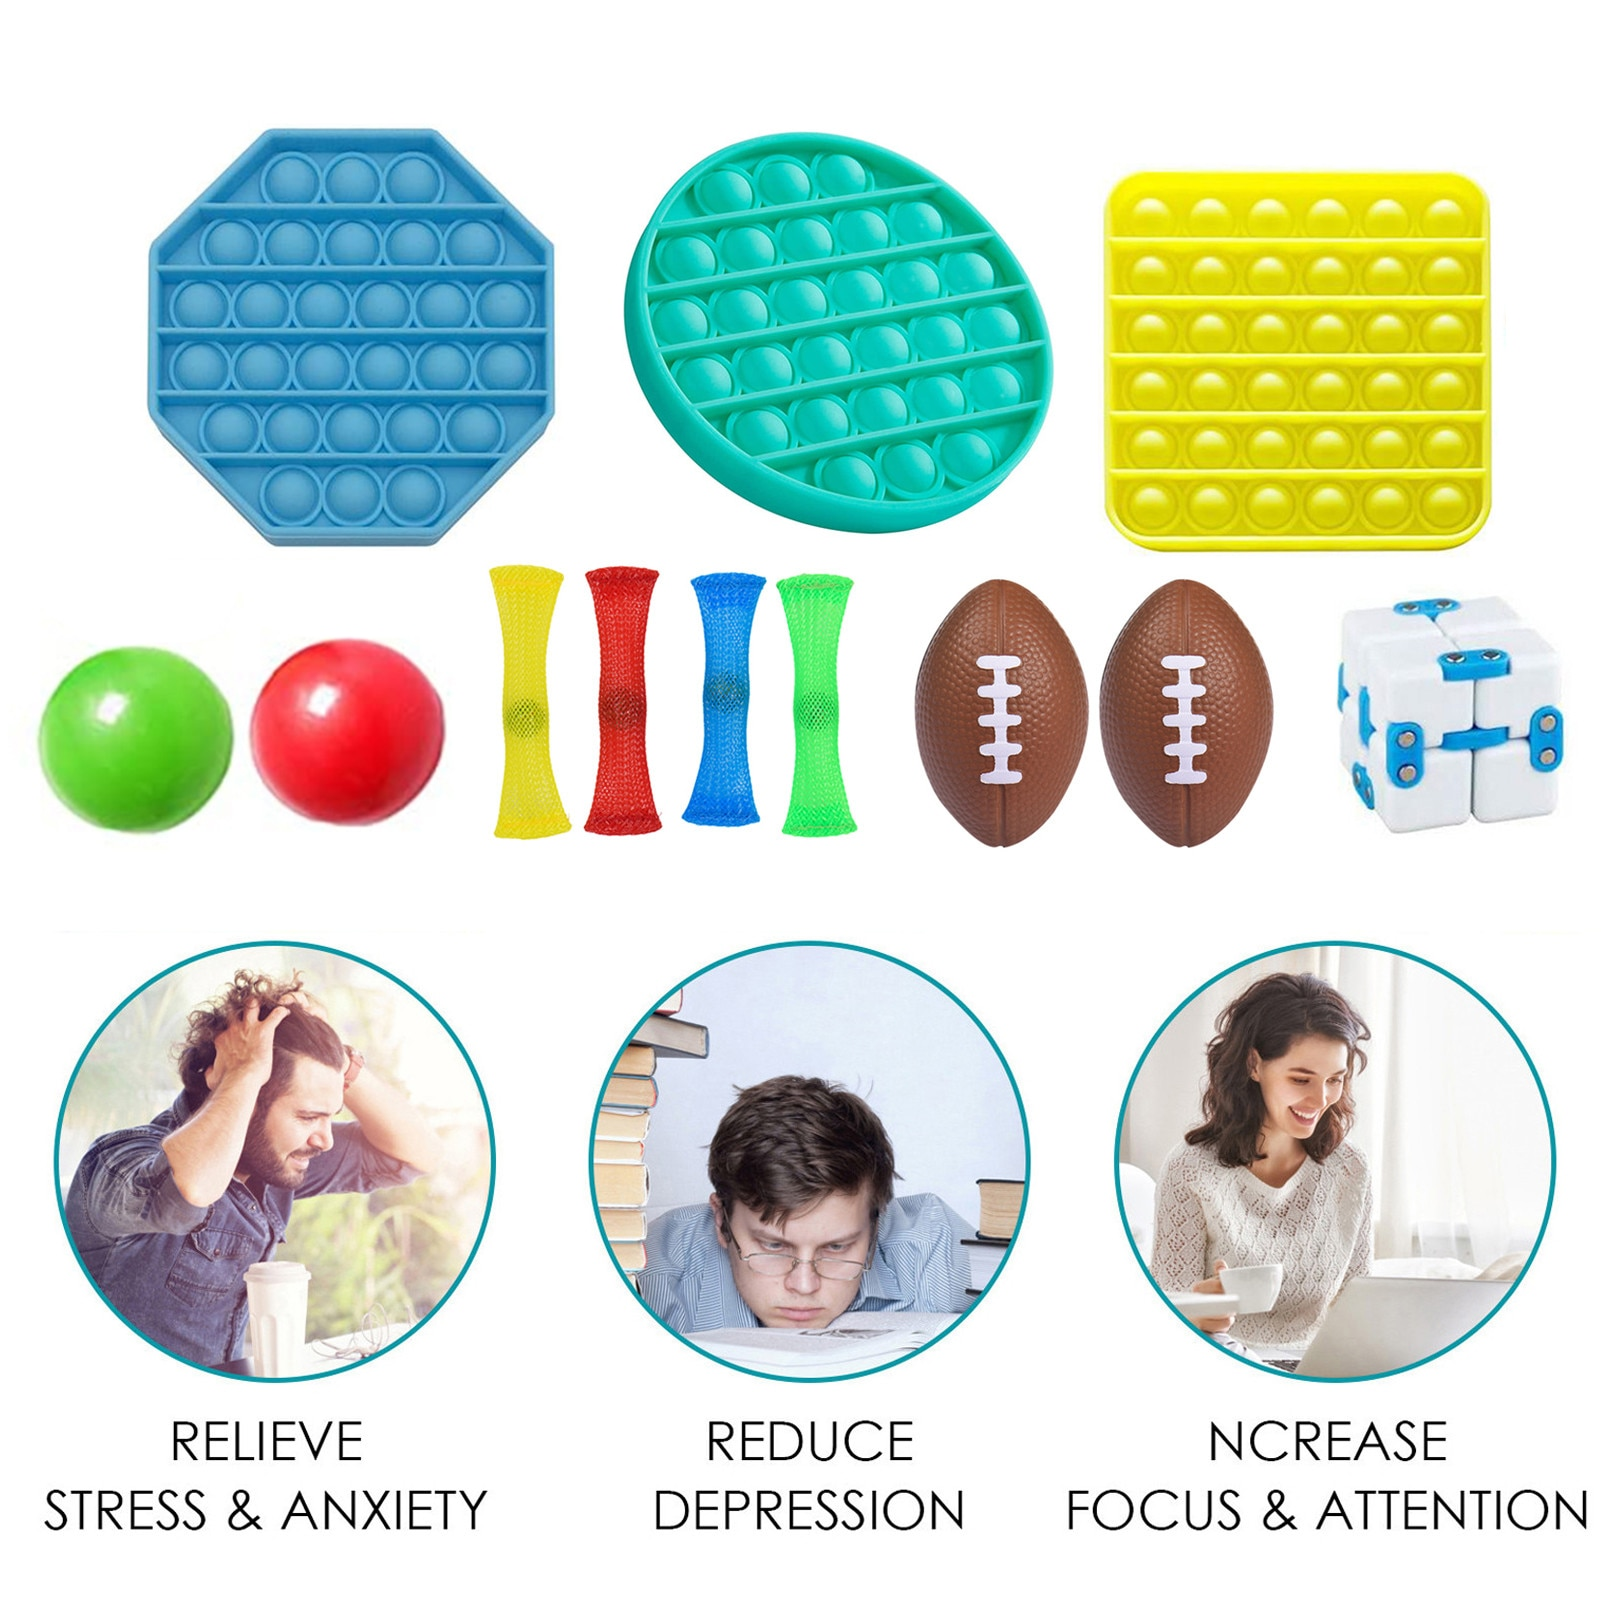 Novelty Fidget Antistress Toys Decompression Antistress Simple Dimple Hand Stress Relief Toy For Children Kids Adults BPA-Free enlarge